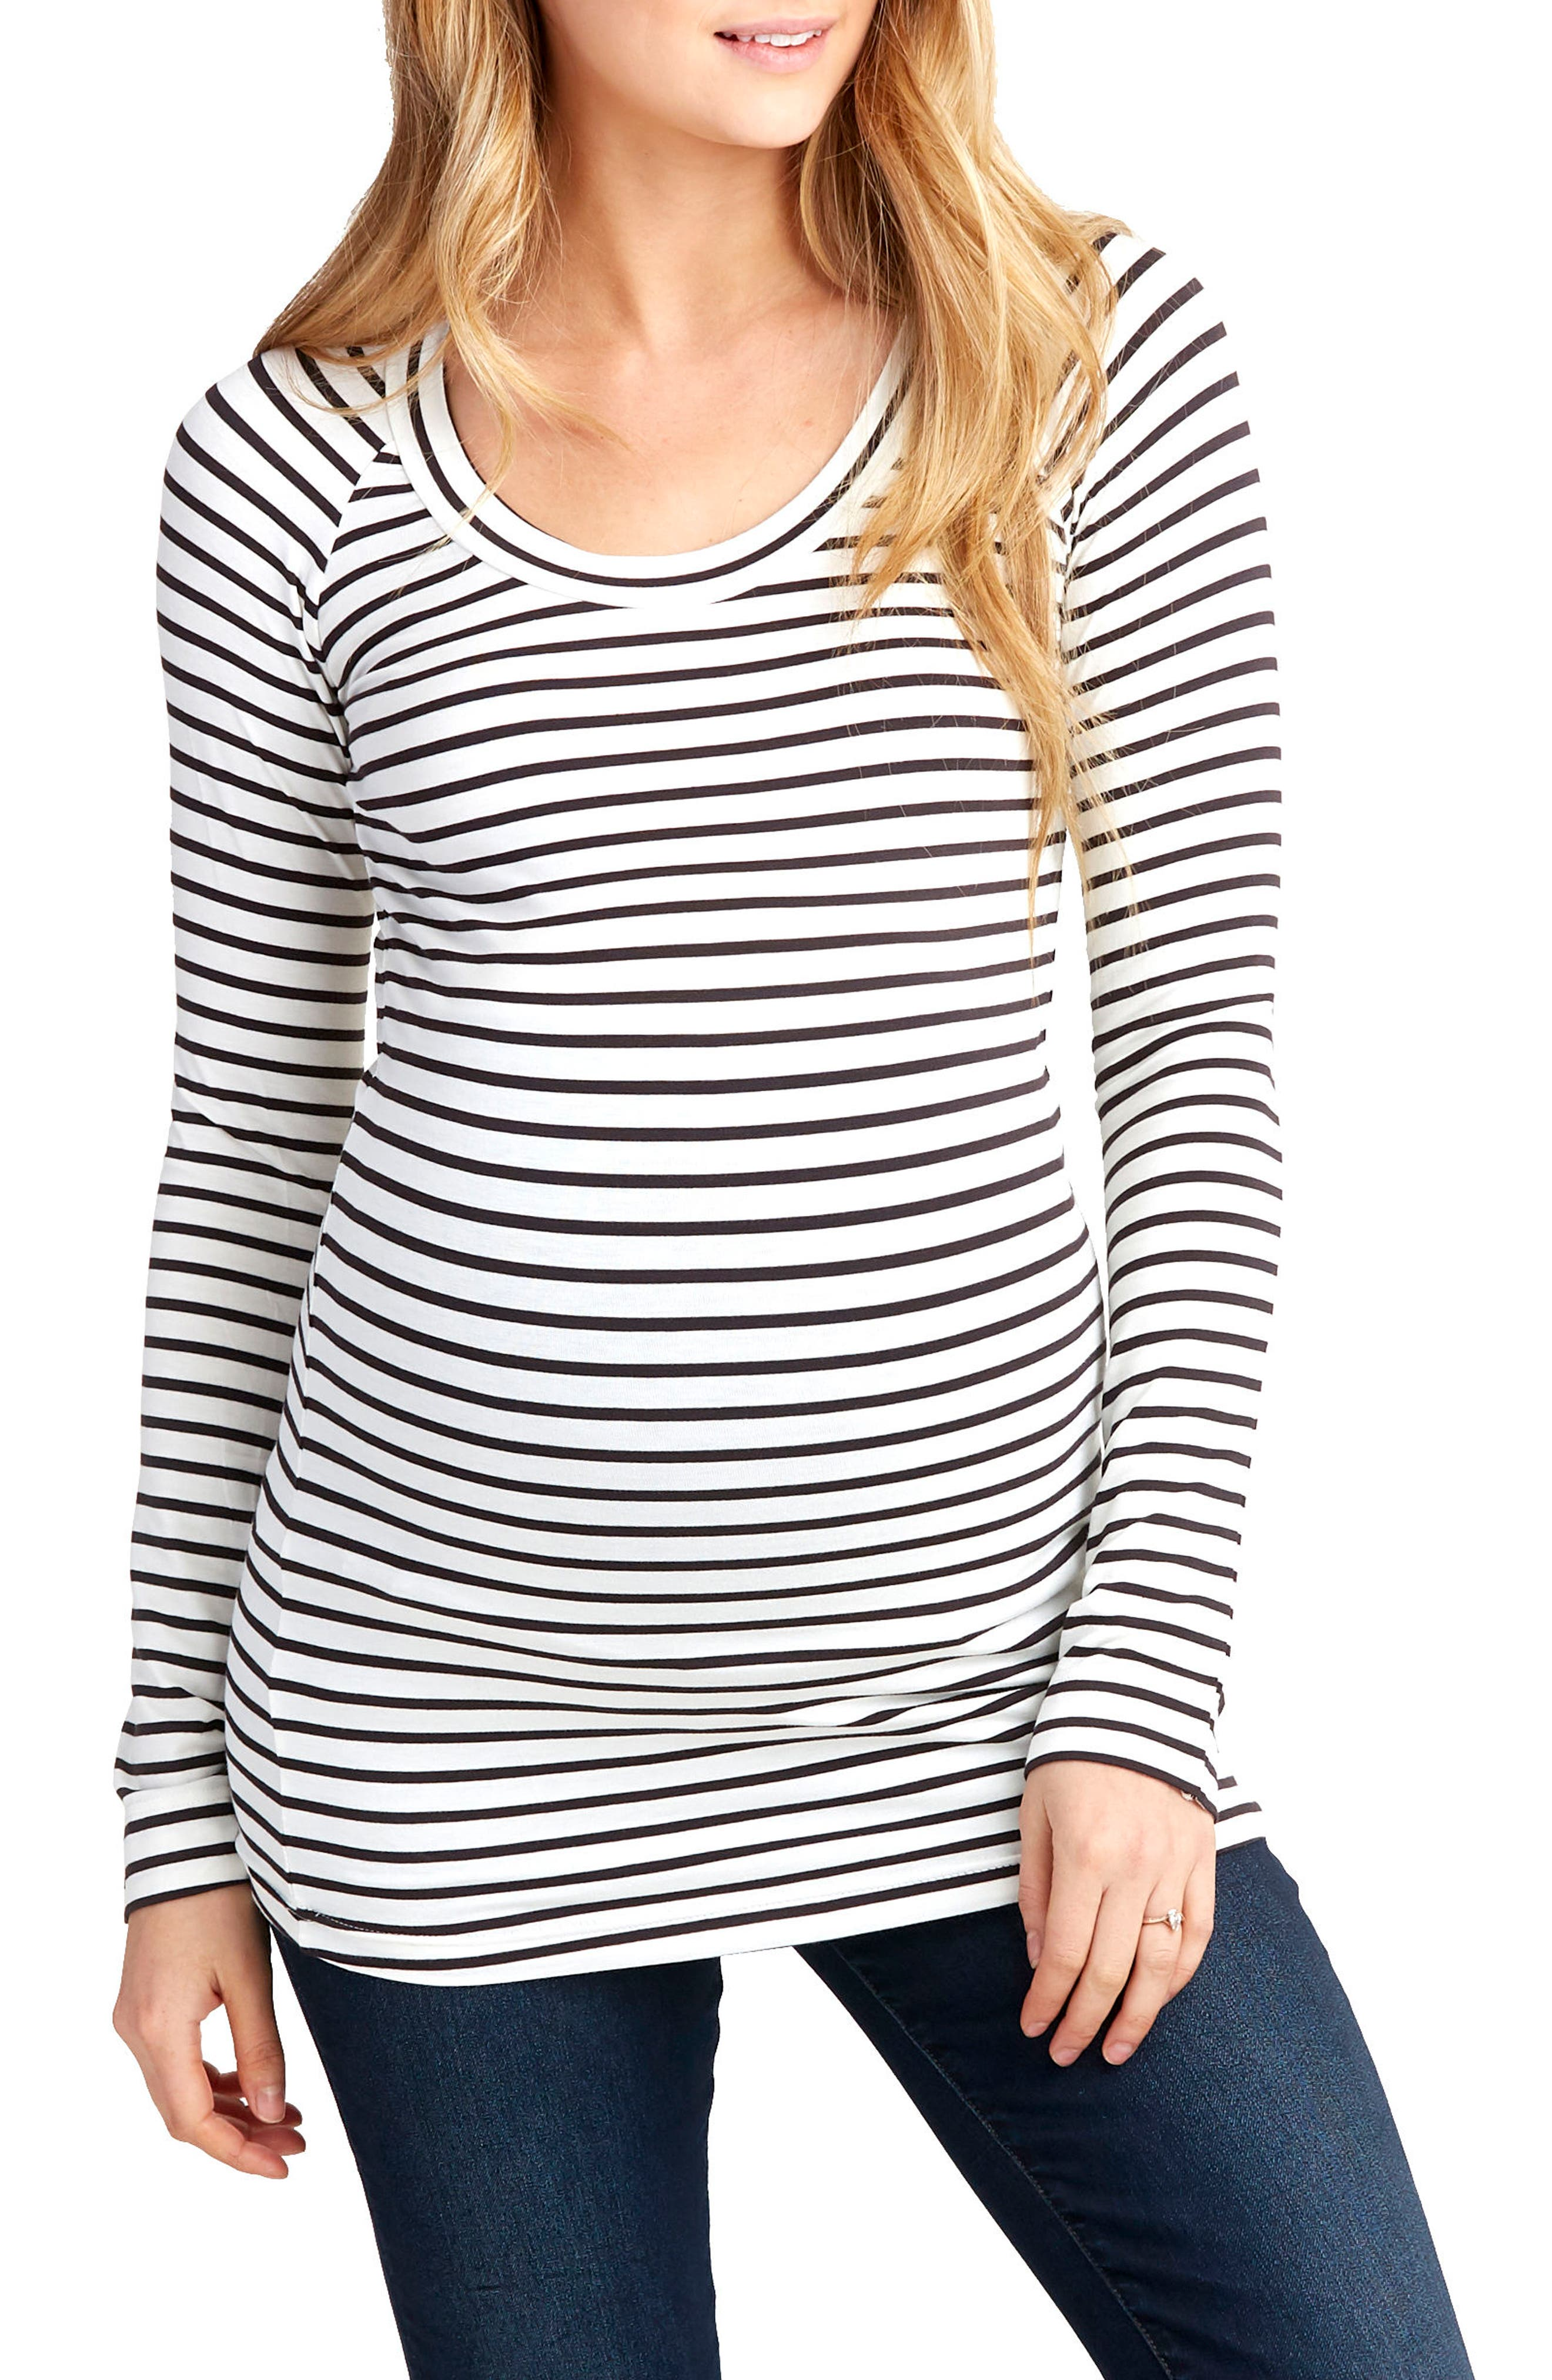 Phoebe Maternity Top,                             Main thumbnail 1, color,                             BLACK AND WHITE STRIPE